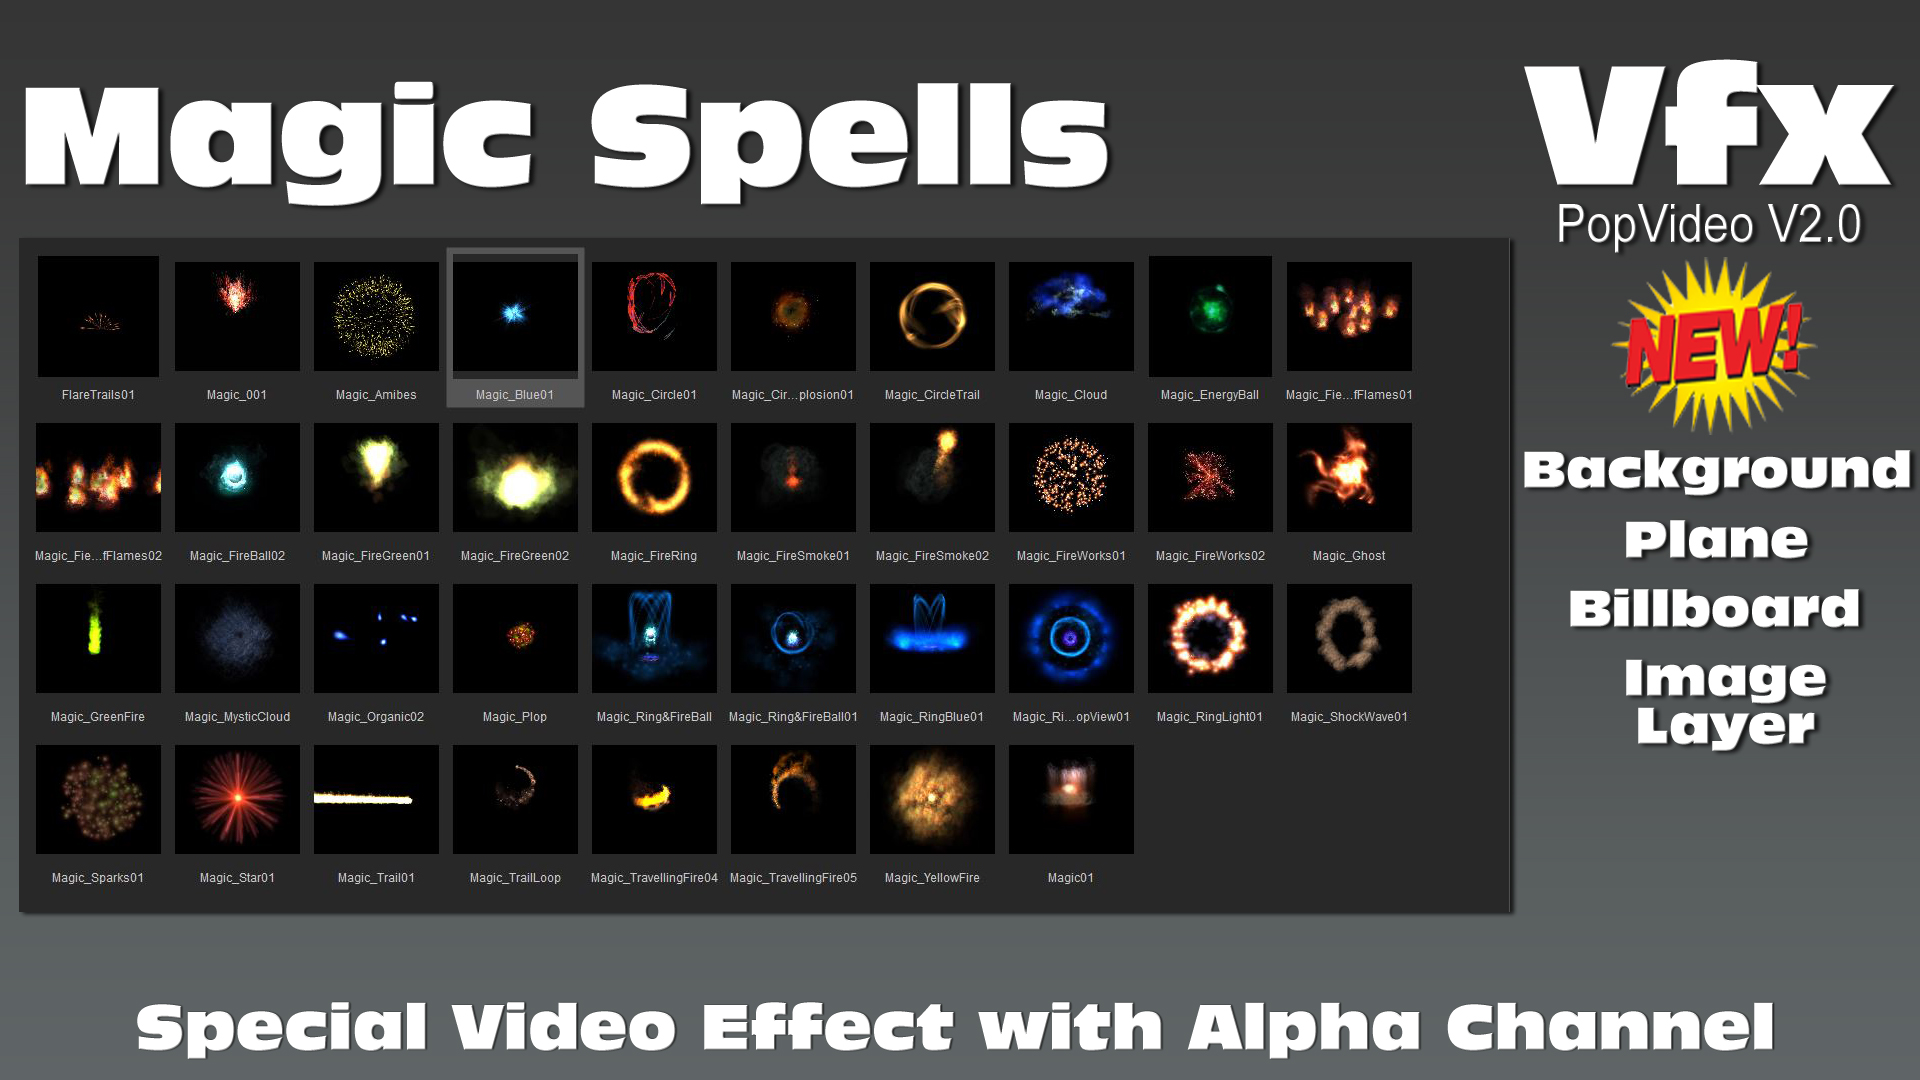 Vfx Magic Spells Video Special Effect - Reallusion Marketplace